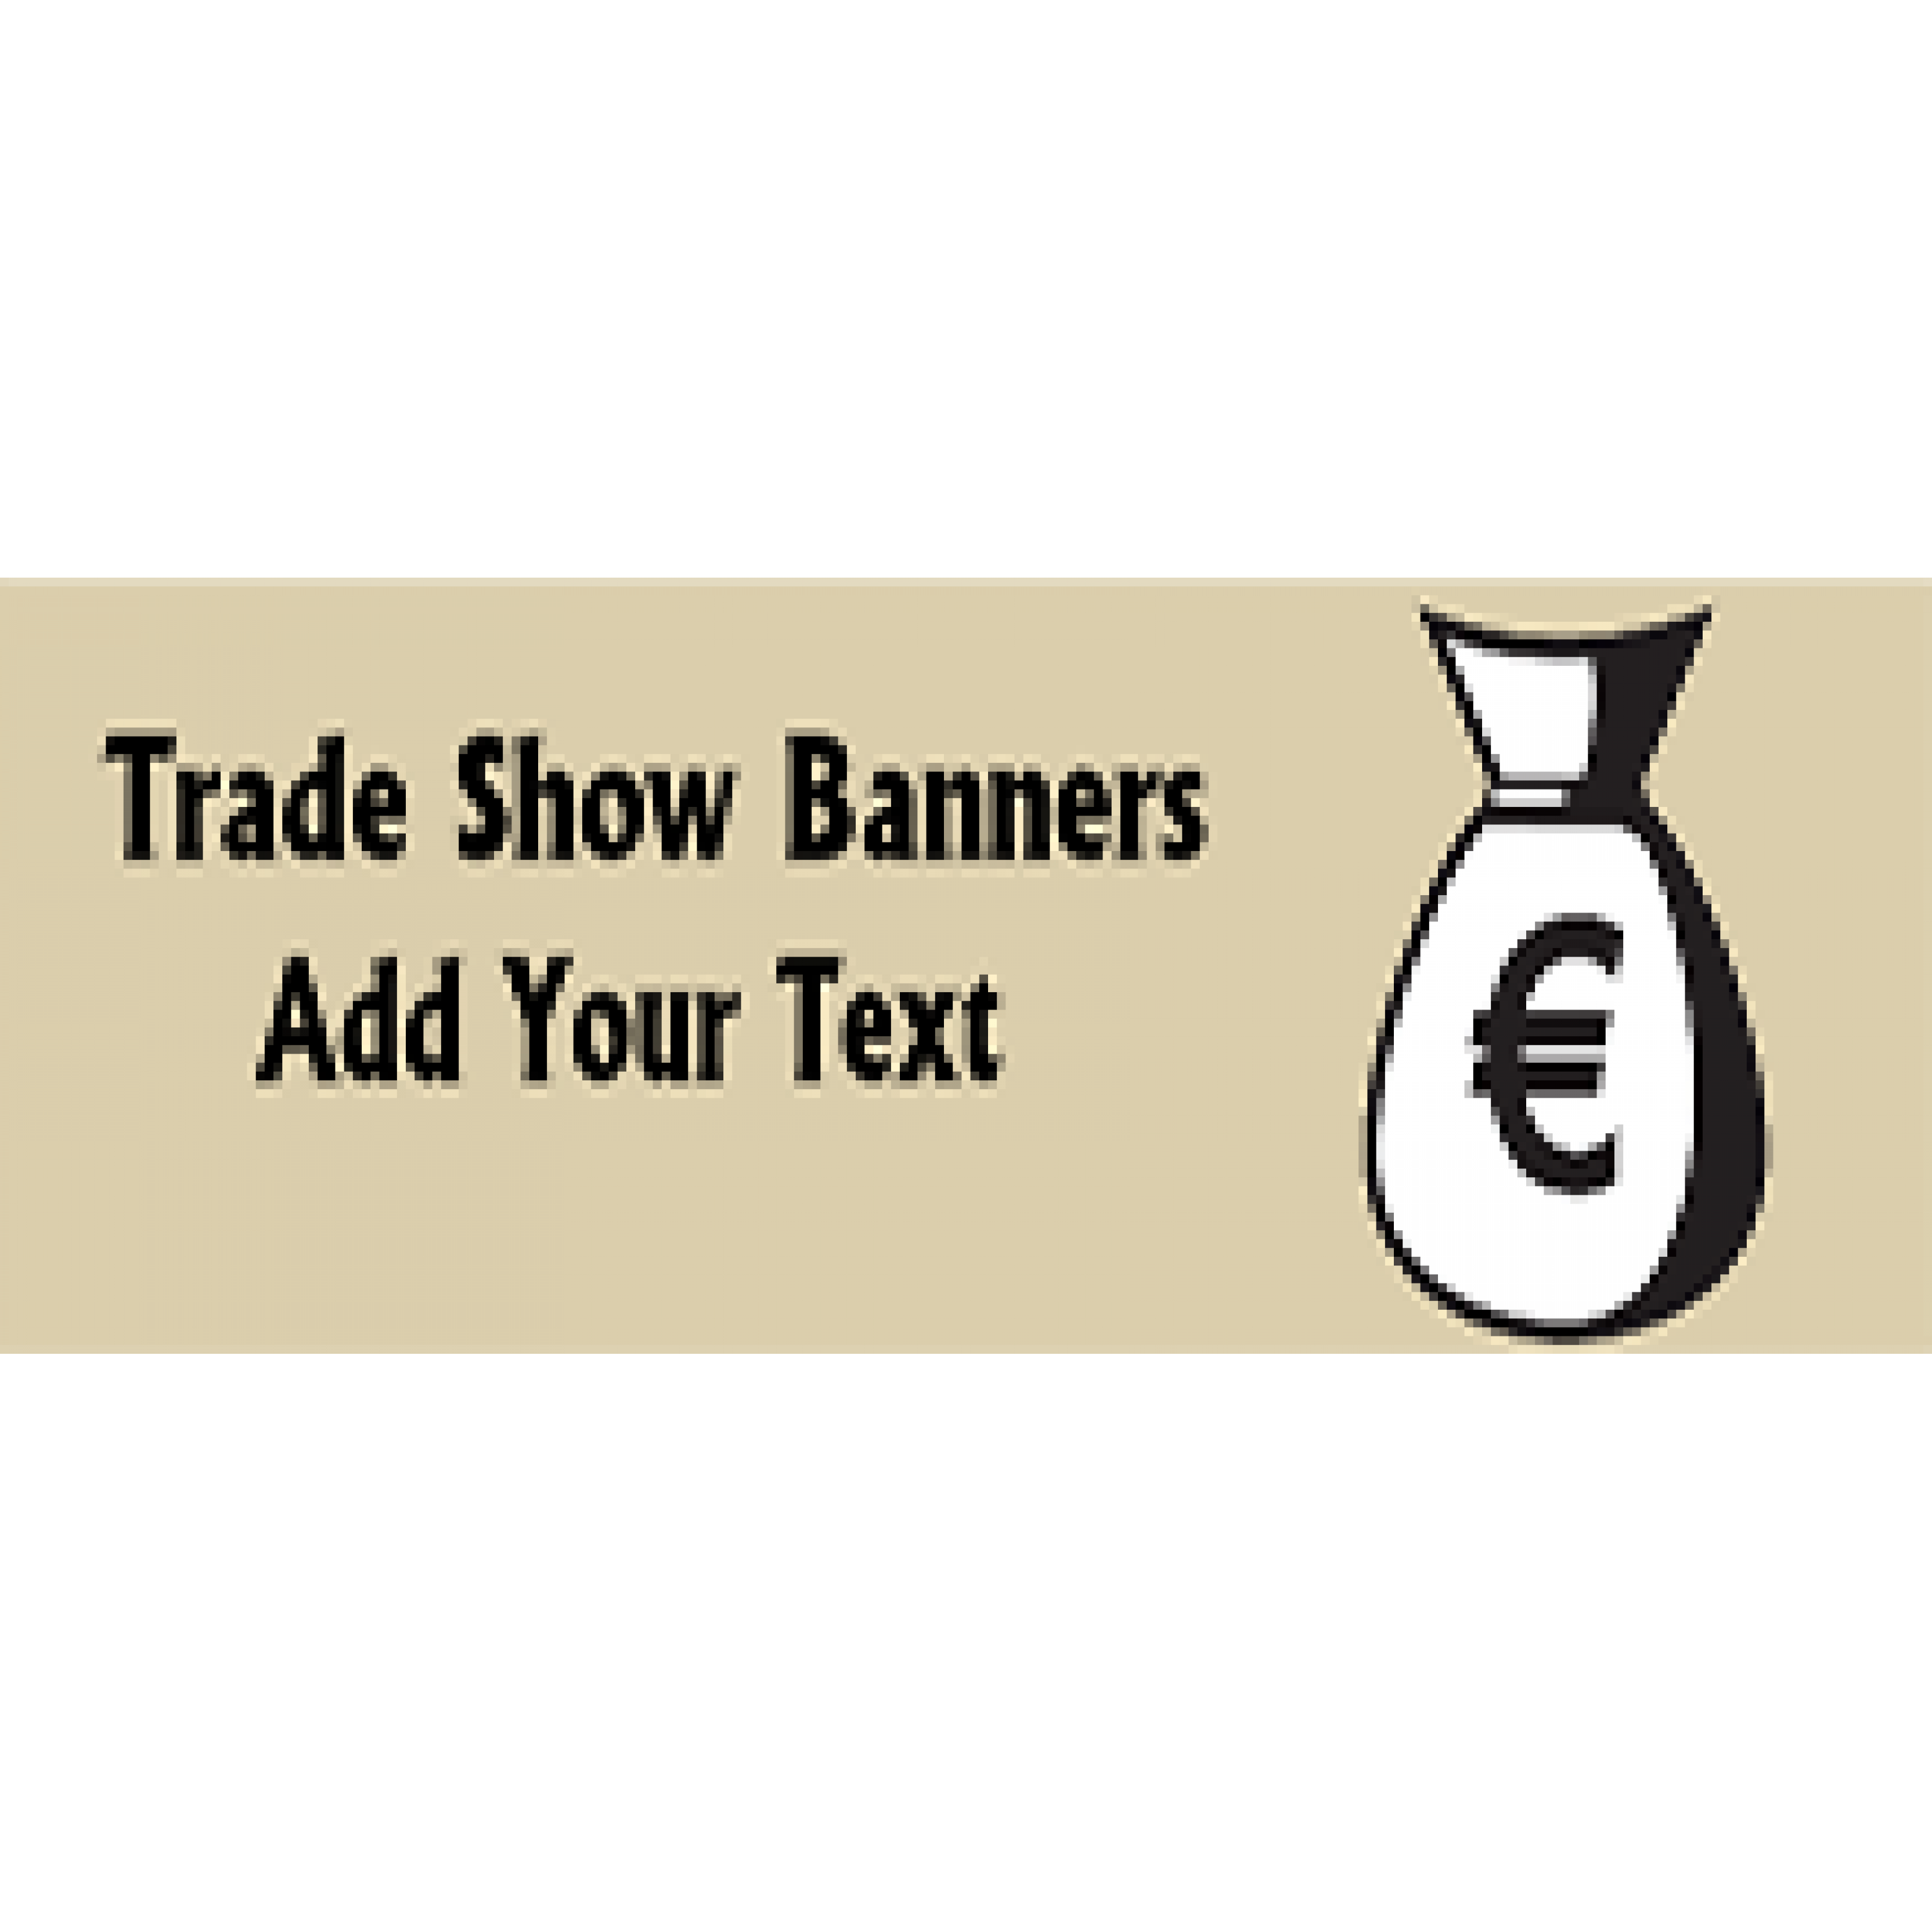 Trade Show Banner 24x96 inches